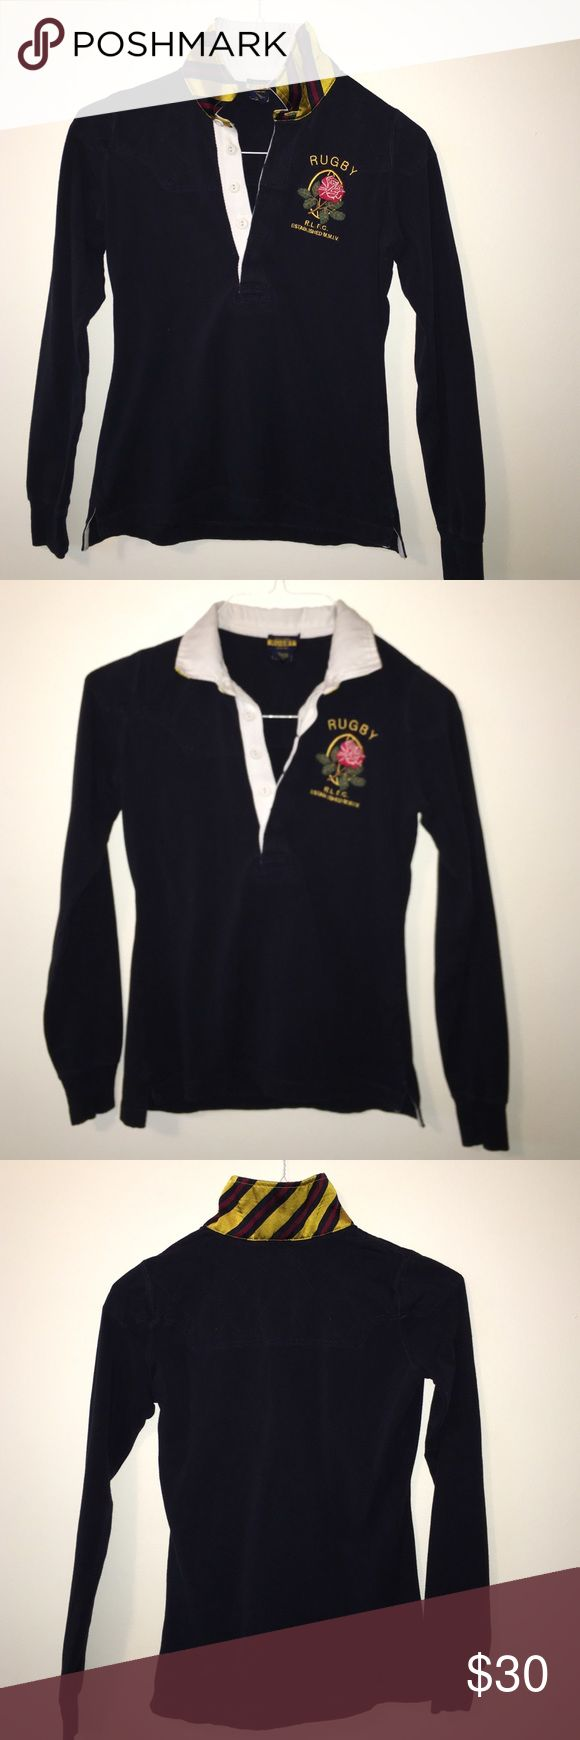 Ralph Lauren Women's Rugby Shirt! Dark blue long sleeve Ralph Lauren three button Rugby shirt! Like-new. Ralph Lauren Tops Tees - Long Sleeve